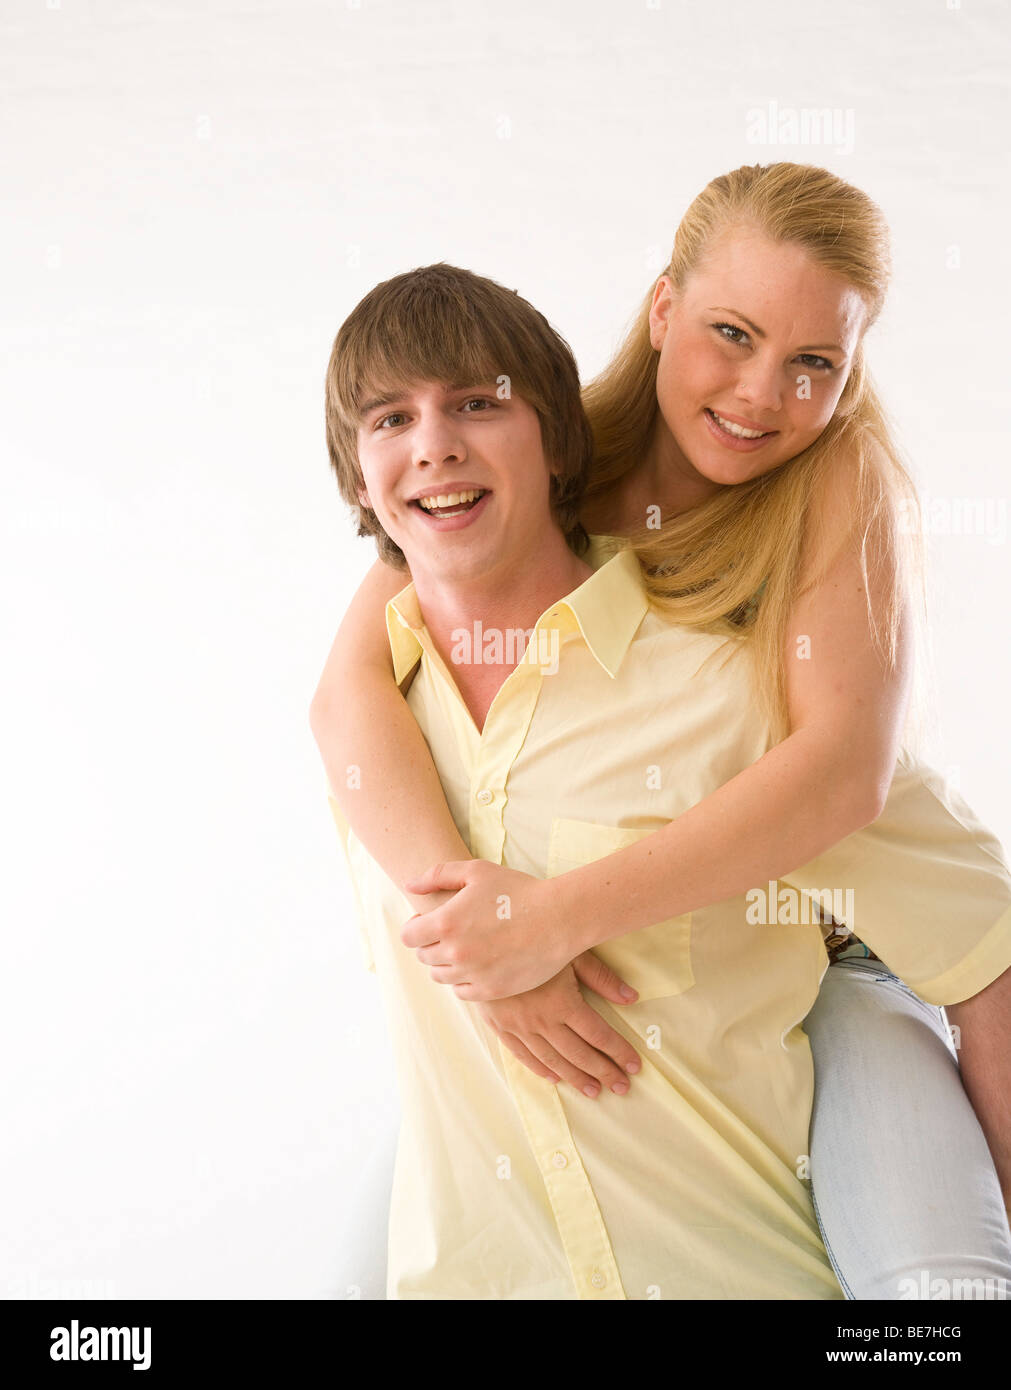 Young man carrying young woman piggyback, laughing - Stock Image